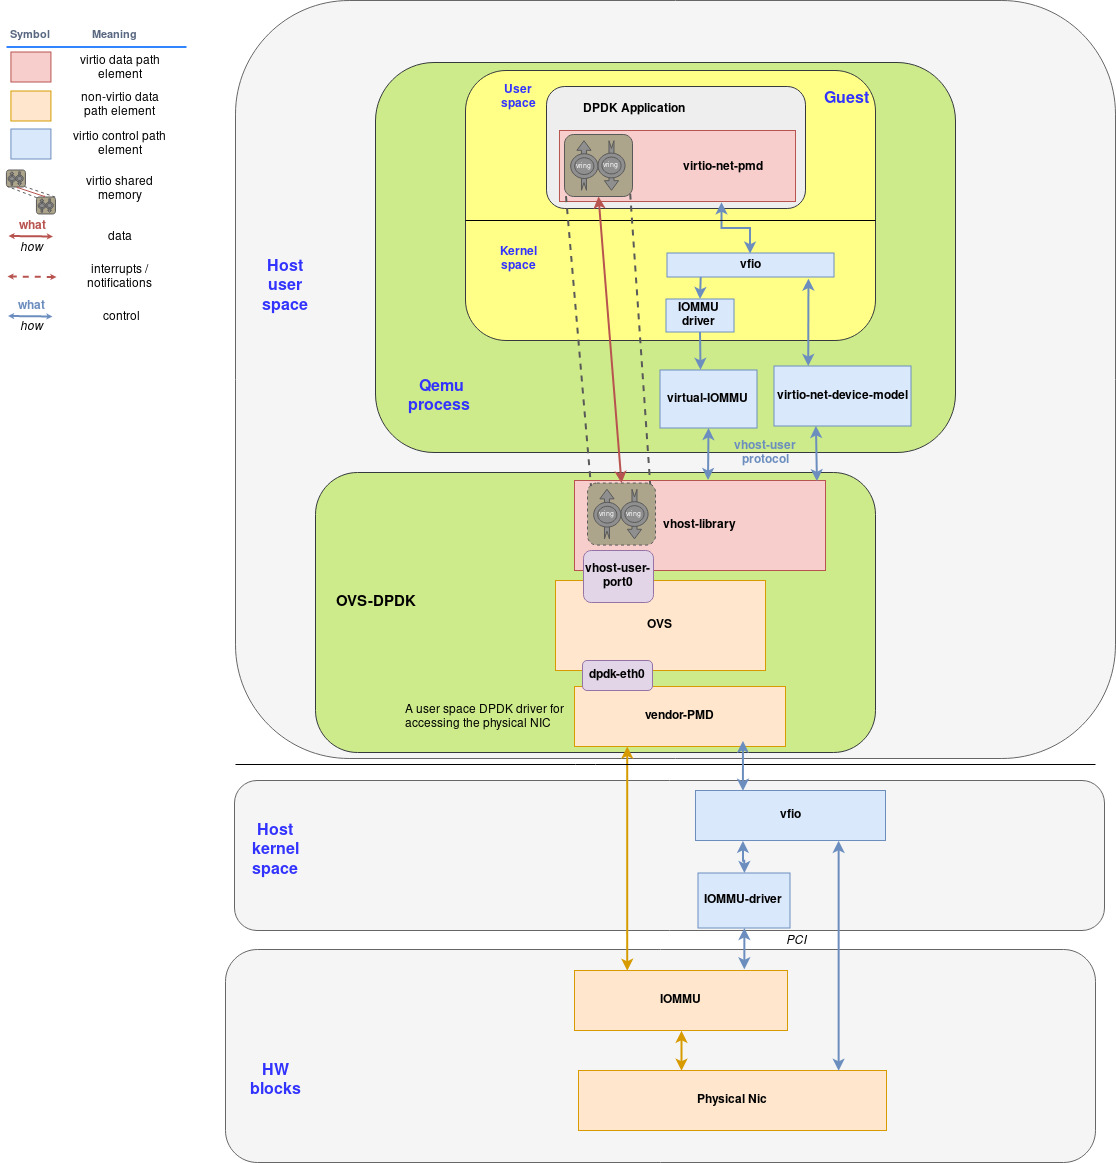 Implementing a vhost-user/virtio-pmd architecture